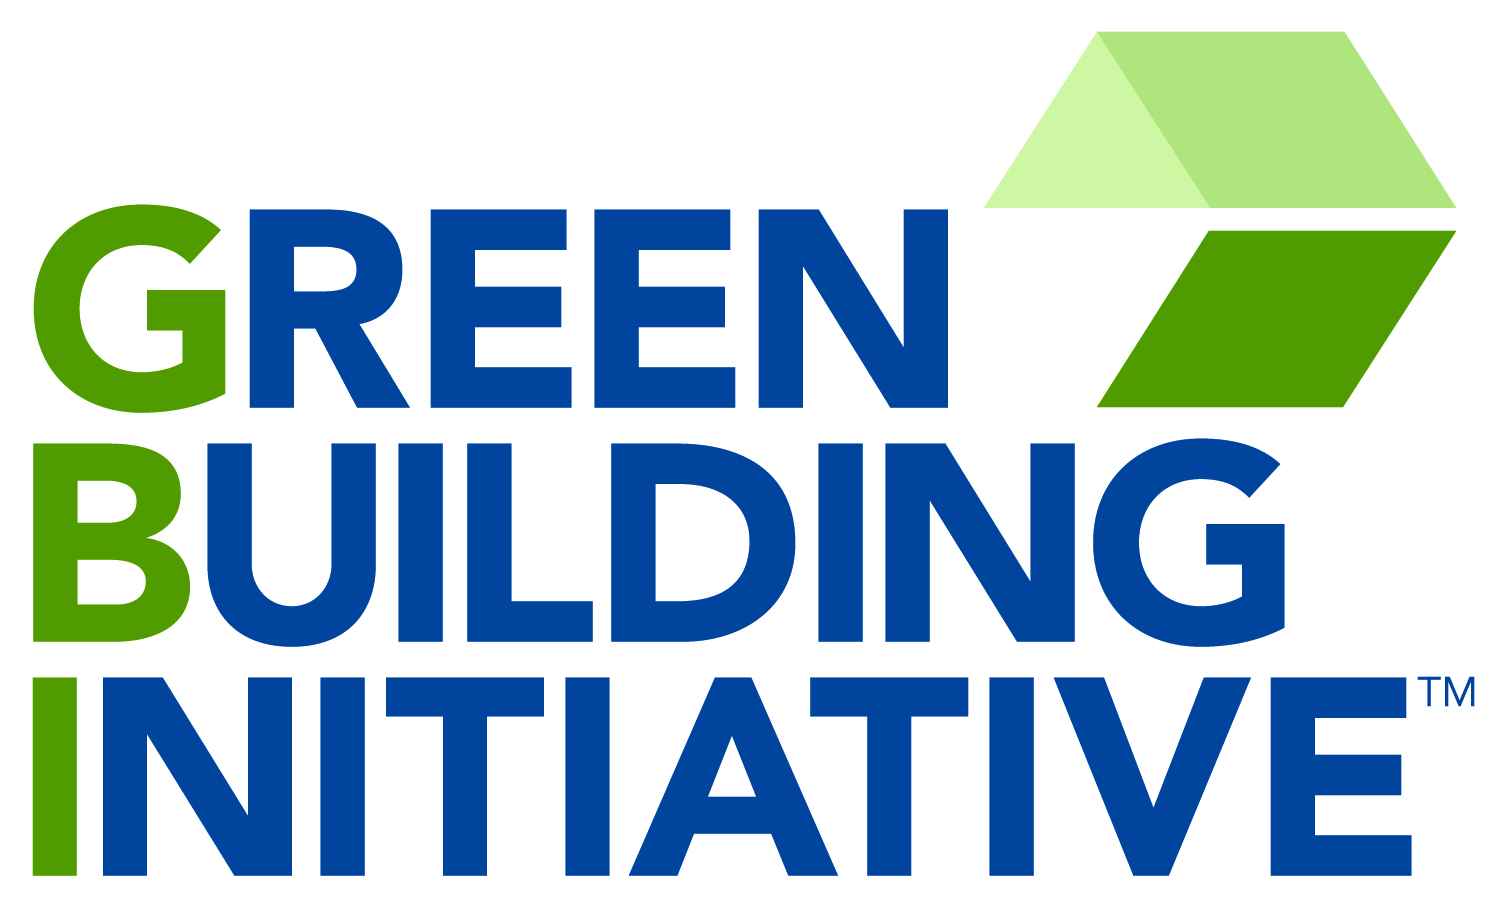 greenbuildinginitiative-02-cj.jpg